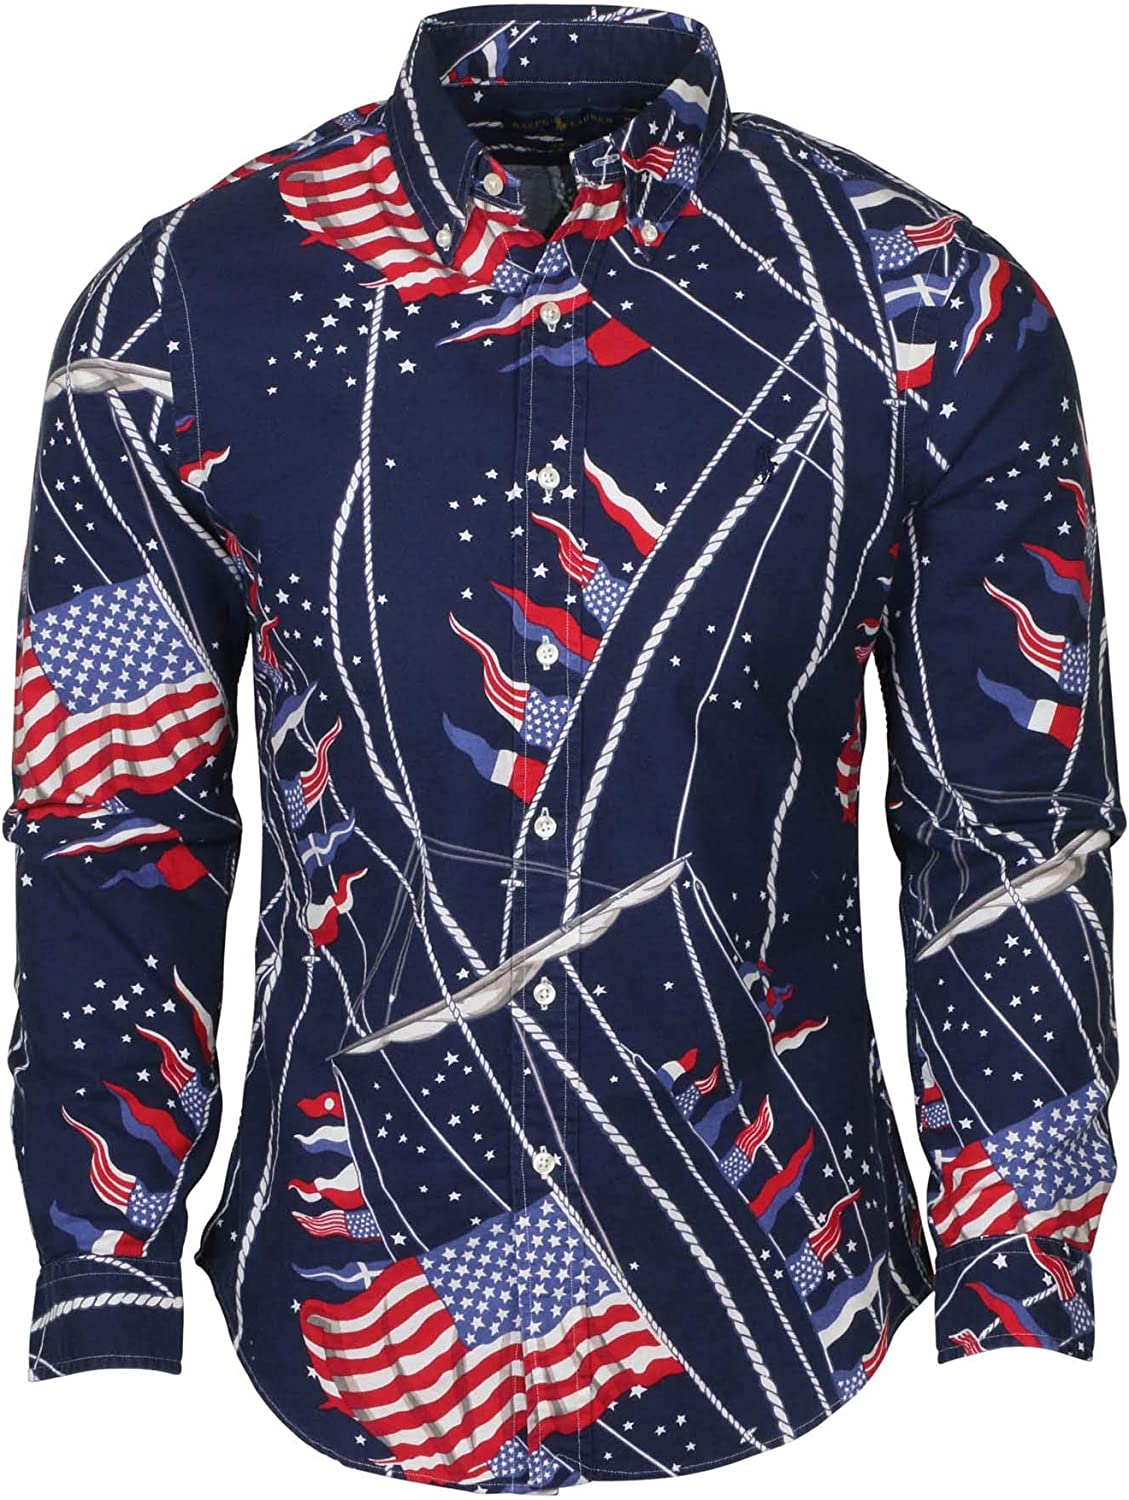 Polo RL Men's Big and Tall USA Flag Classic Fit Button Down Shirt